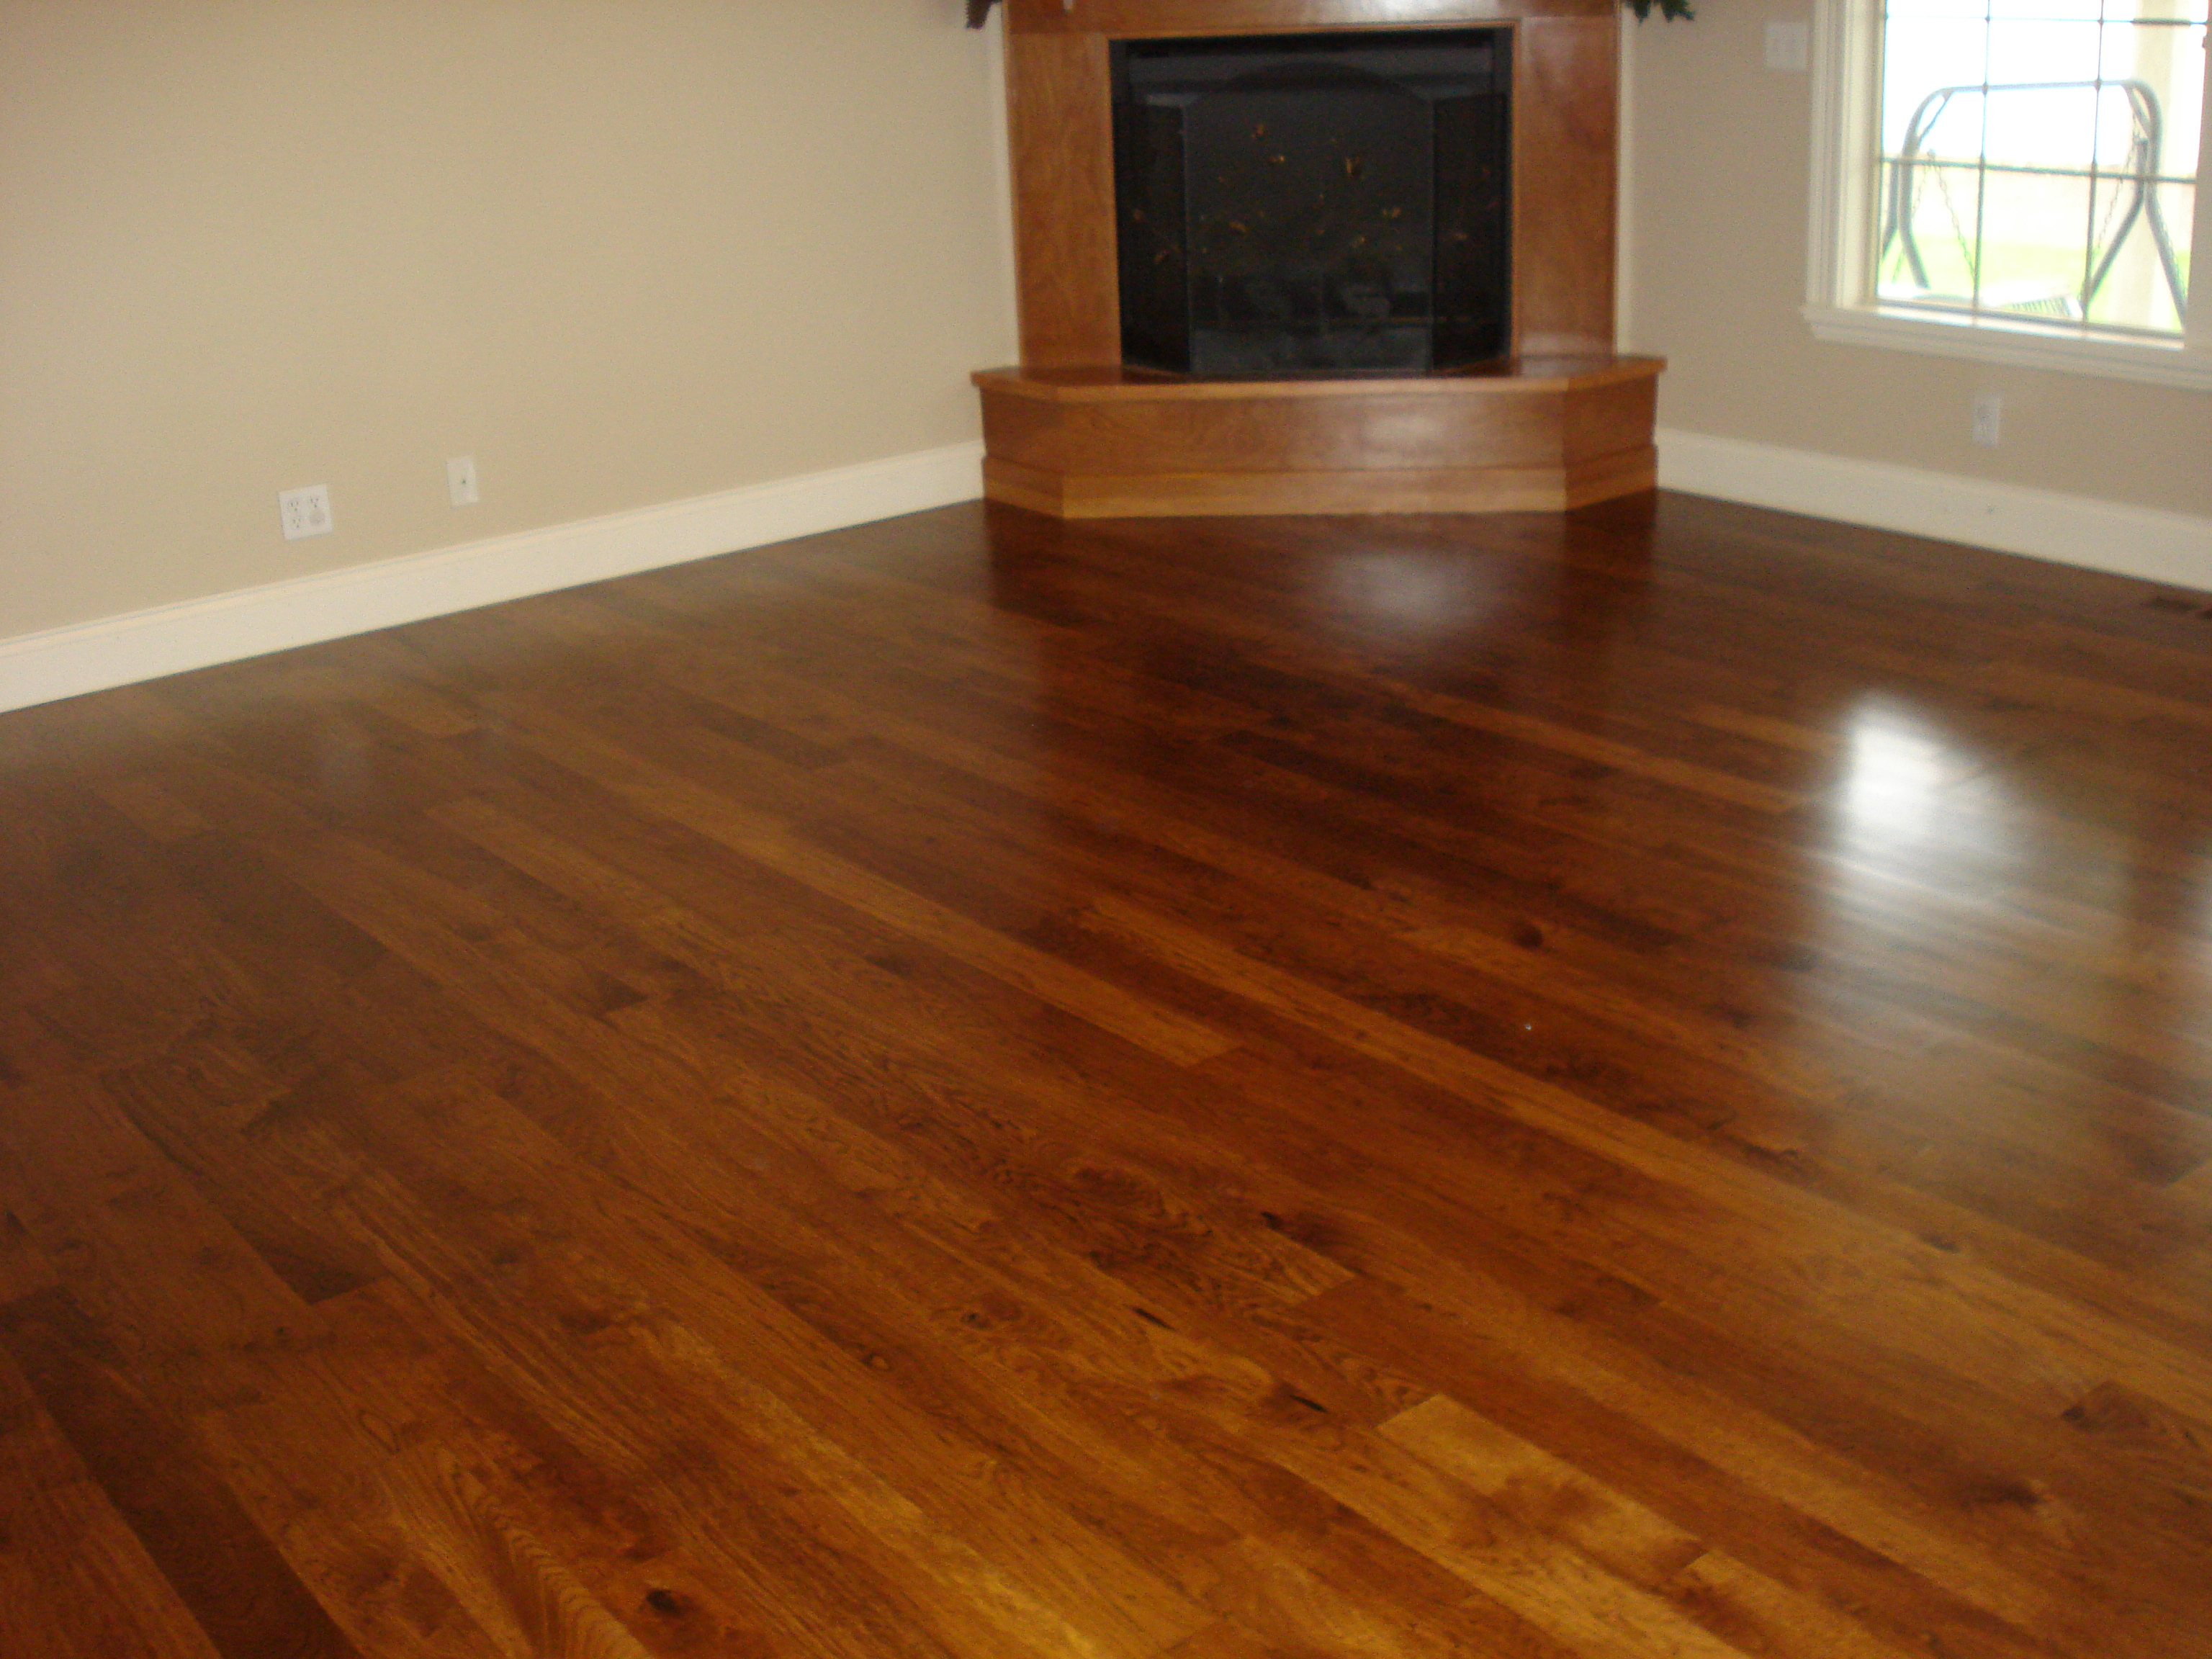 Carson s custom hardwood floors utah hardwood flooring for Home hardwood flooring